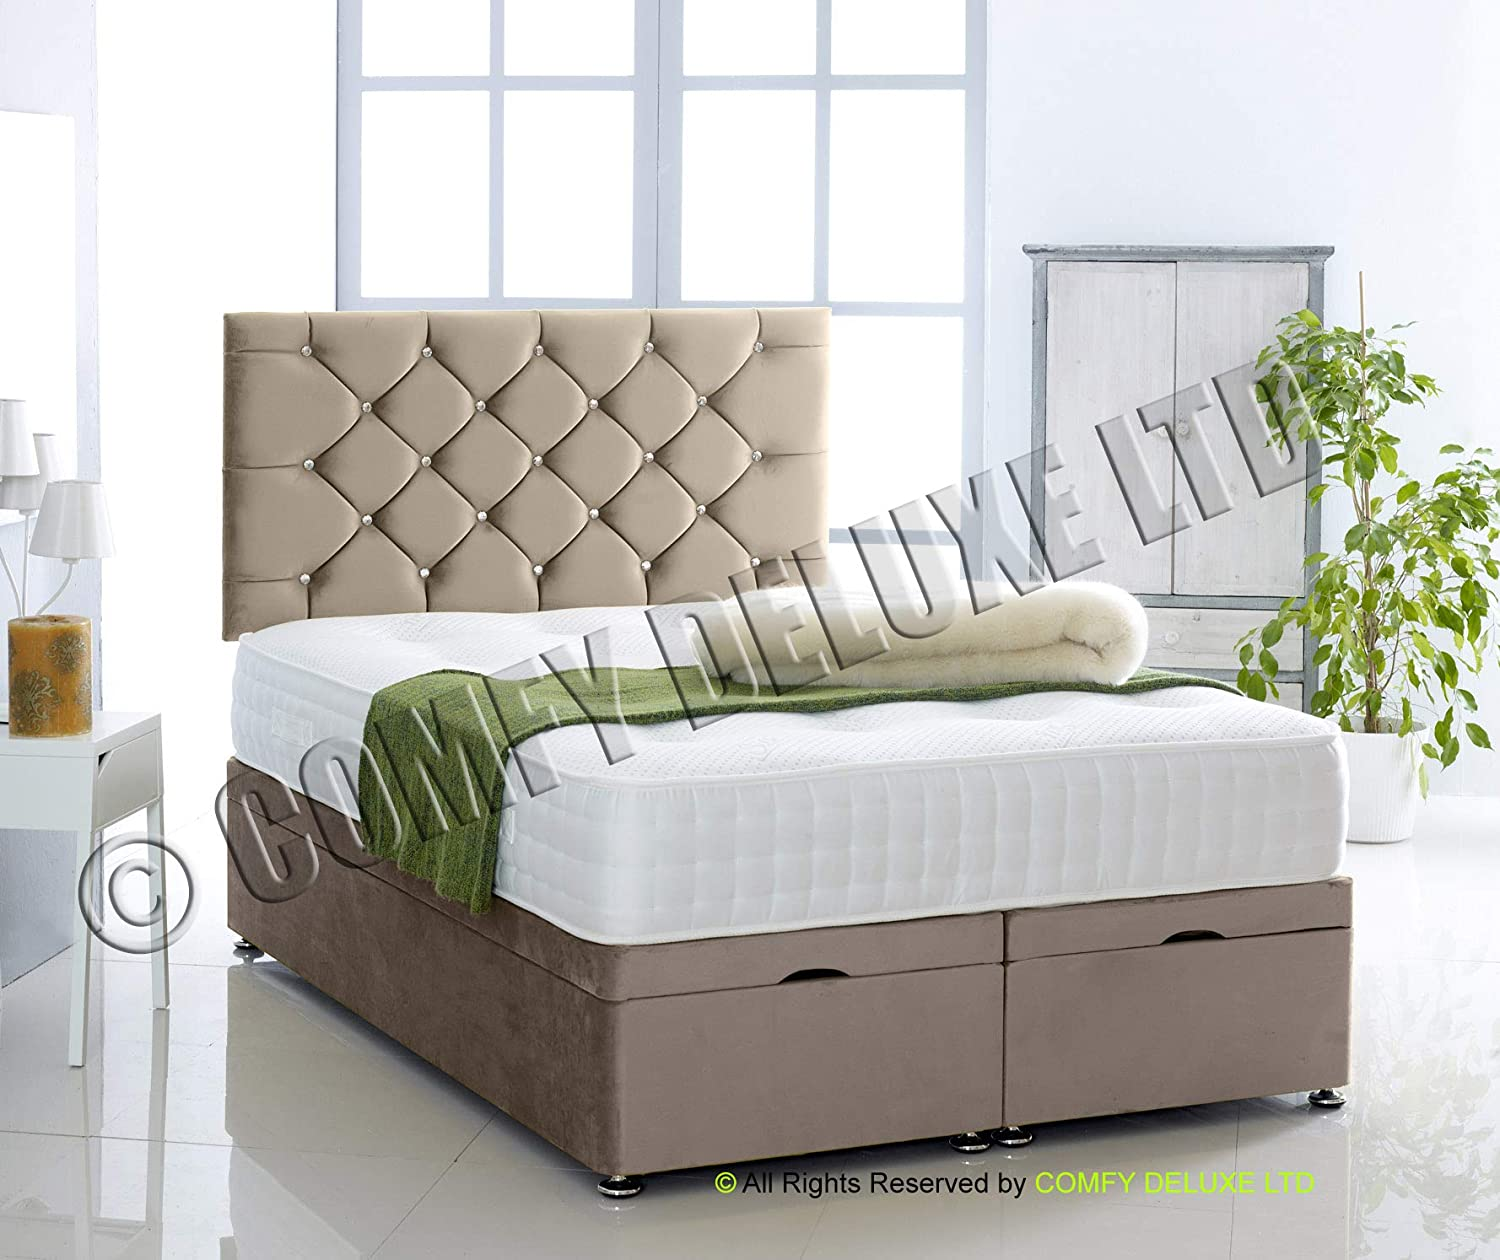 Black, 3FT Small Ottoman Bed Foot Lift Plush Velvet Base and 1000 Pocket Memory Mattress by Comfy Deluxe LTD